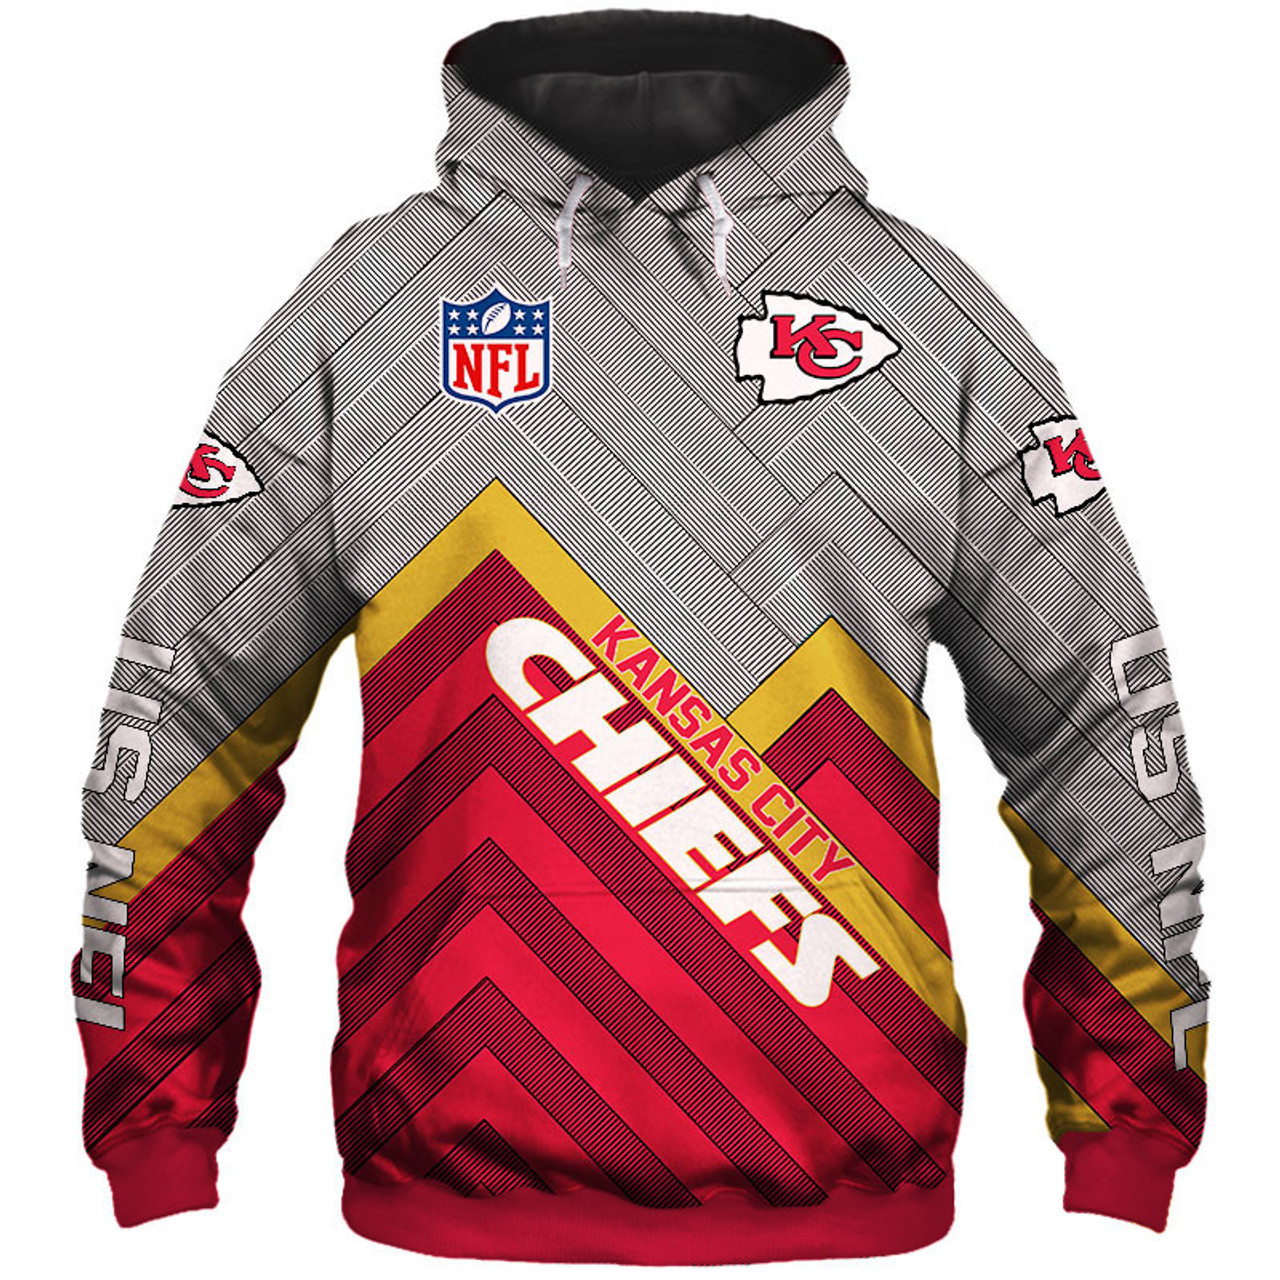 lowest price d2b13 8e4c4 **(NEW-OFFICIAL-N.F.L.KANSAS-CITY-CHIEFS-PULLOVER-HOODIES/3D-CUSTOM-CHIEFS-LOGOS  & OFFICIAL-CHIEFS-TEAM-COLORS/NICE-3D-DETAILED-GRAPHIC-PRINTED-DOUBLE...